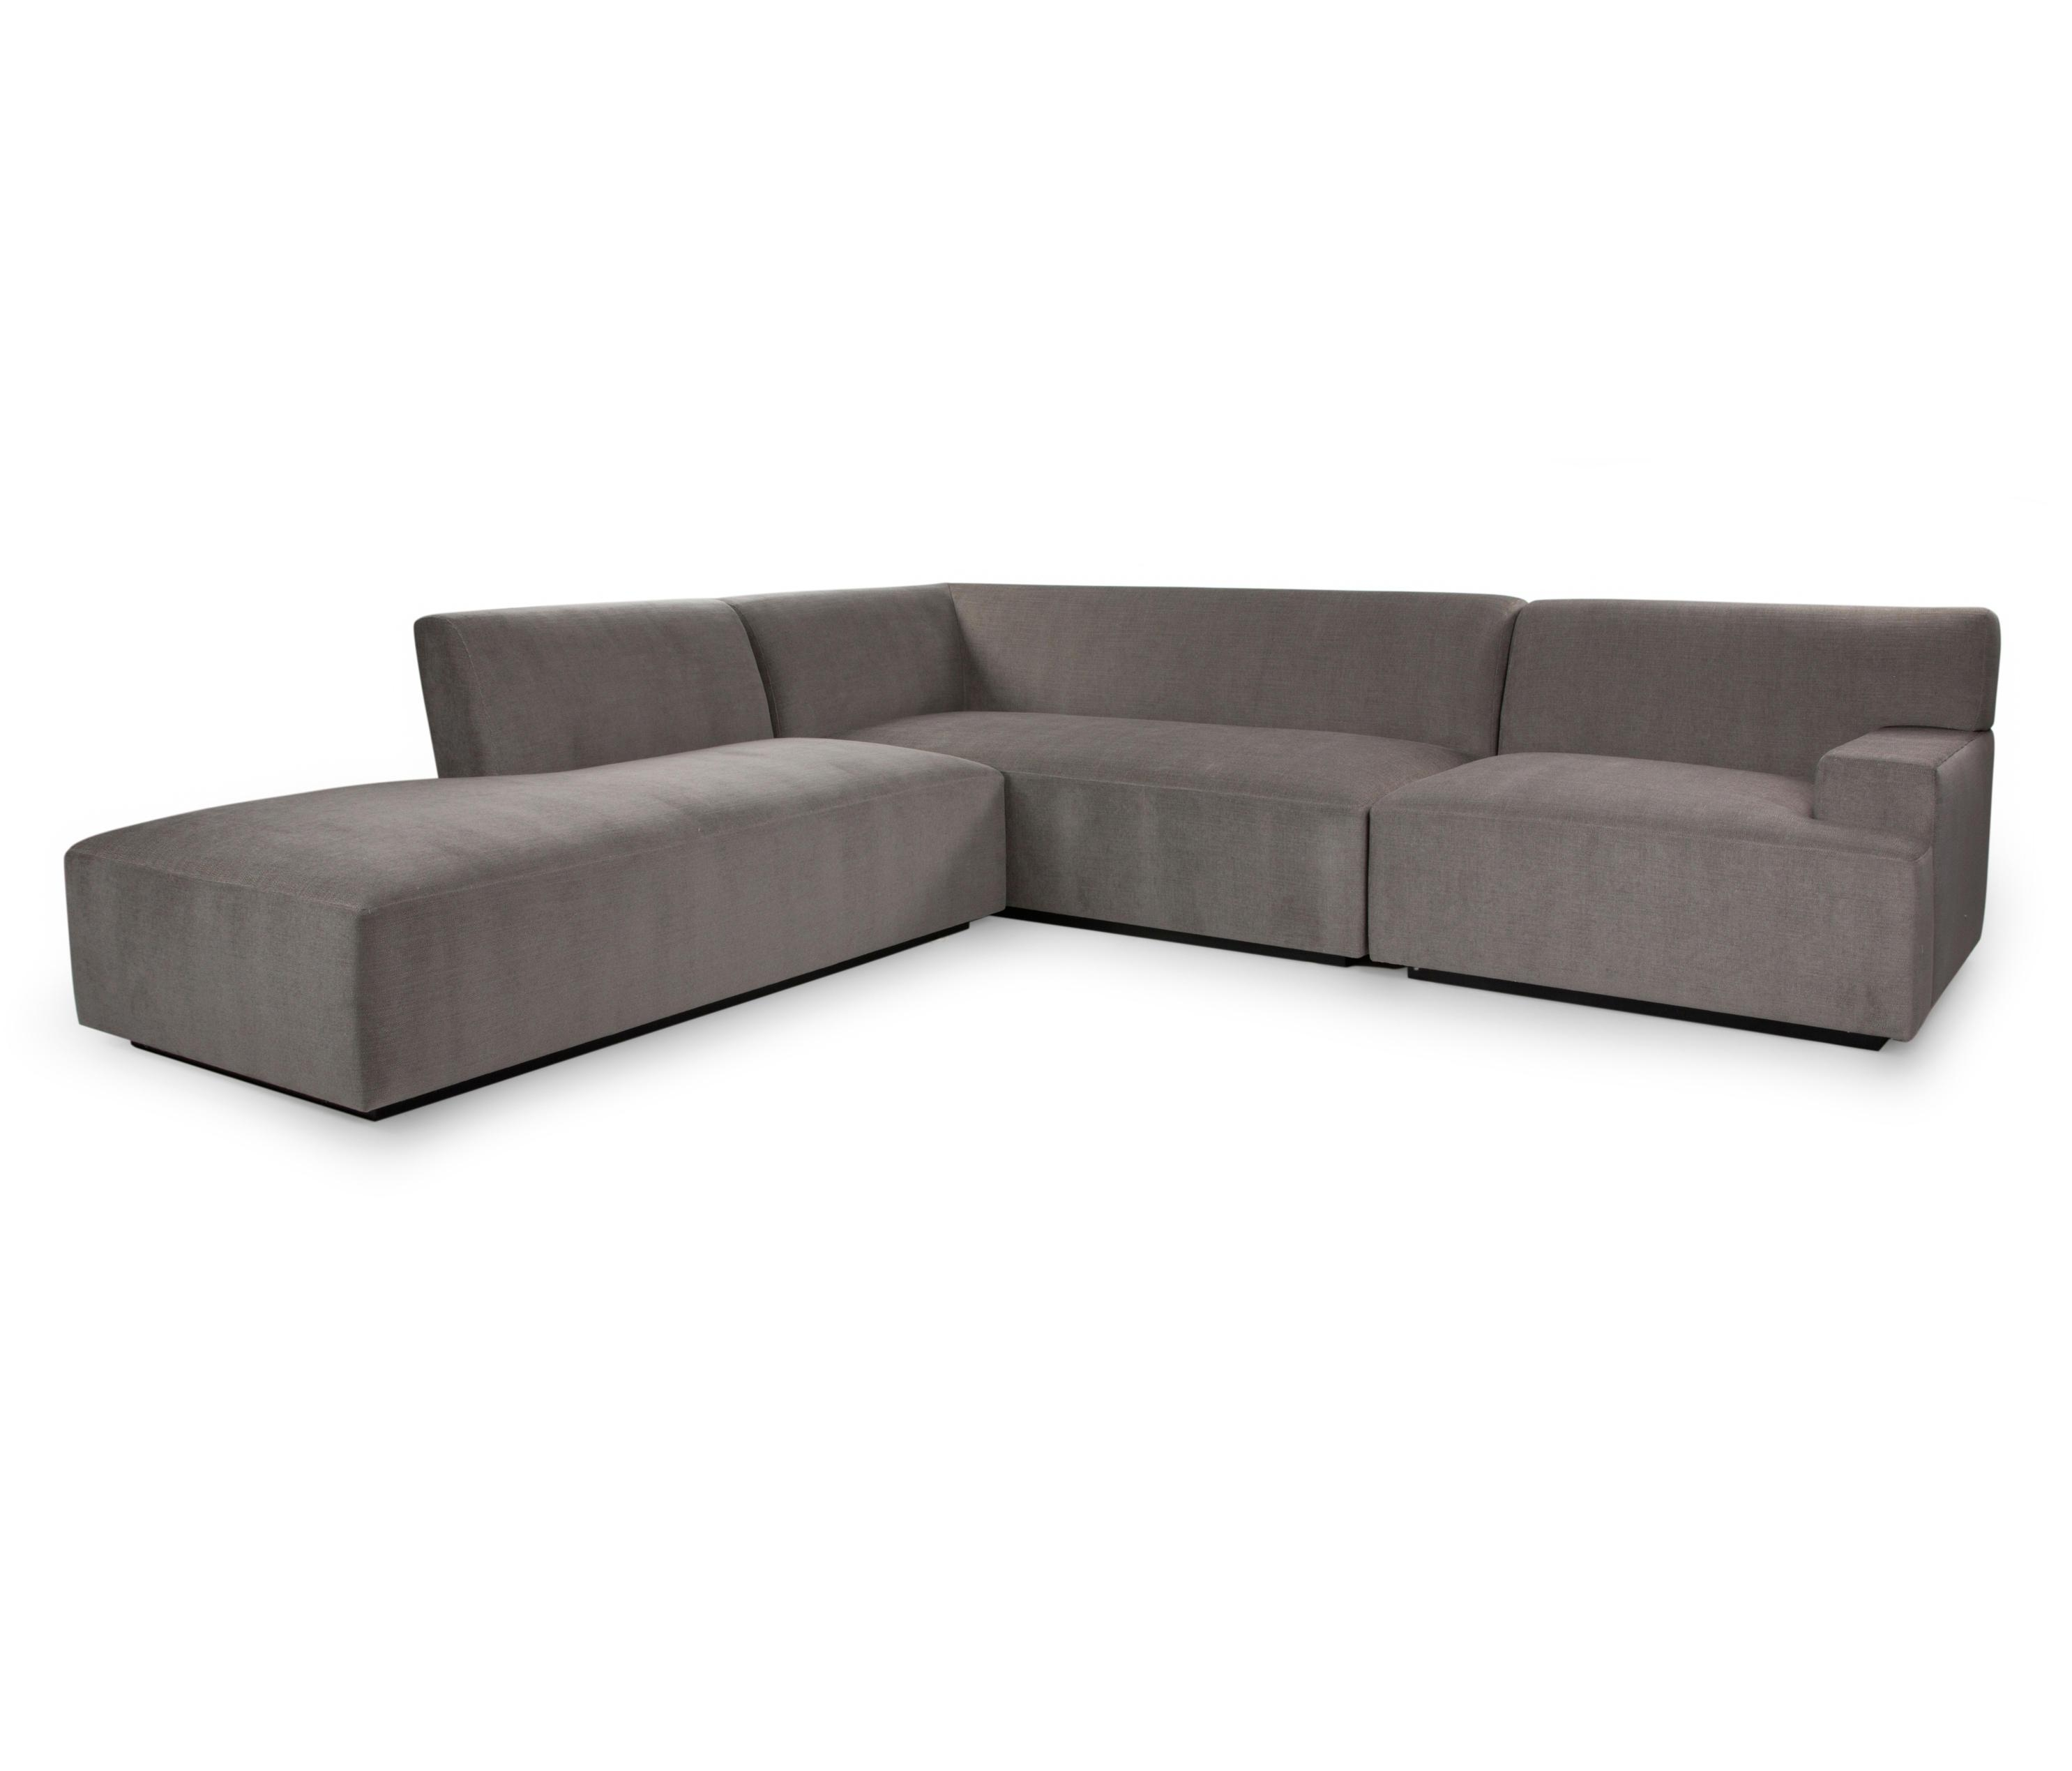 Modular Sofas – Research And Select The Sofa & Chair Company Ltd Regarding Modular Sofas (Image 14 of 20)